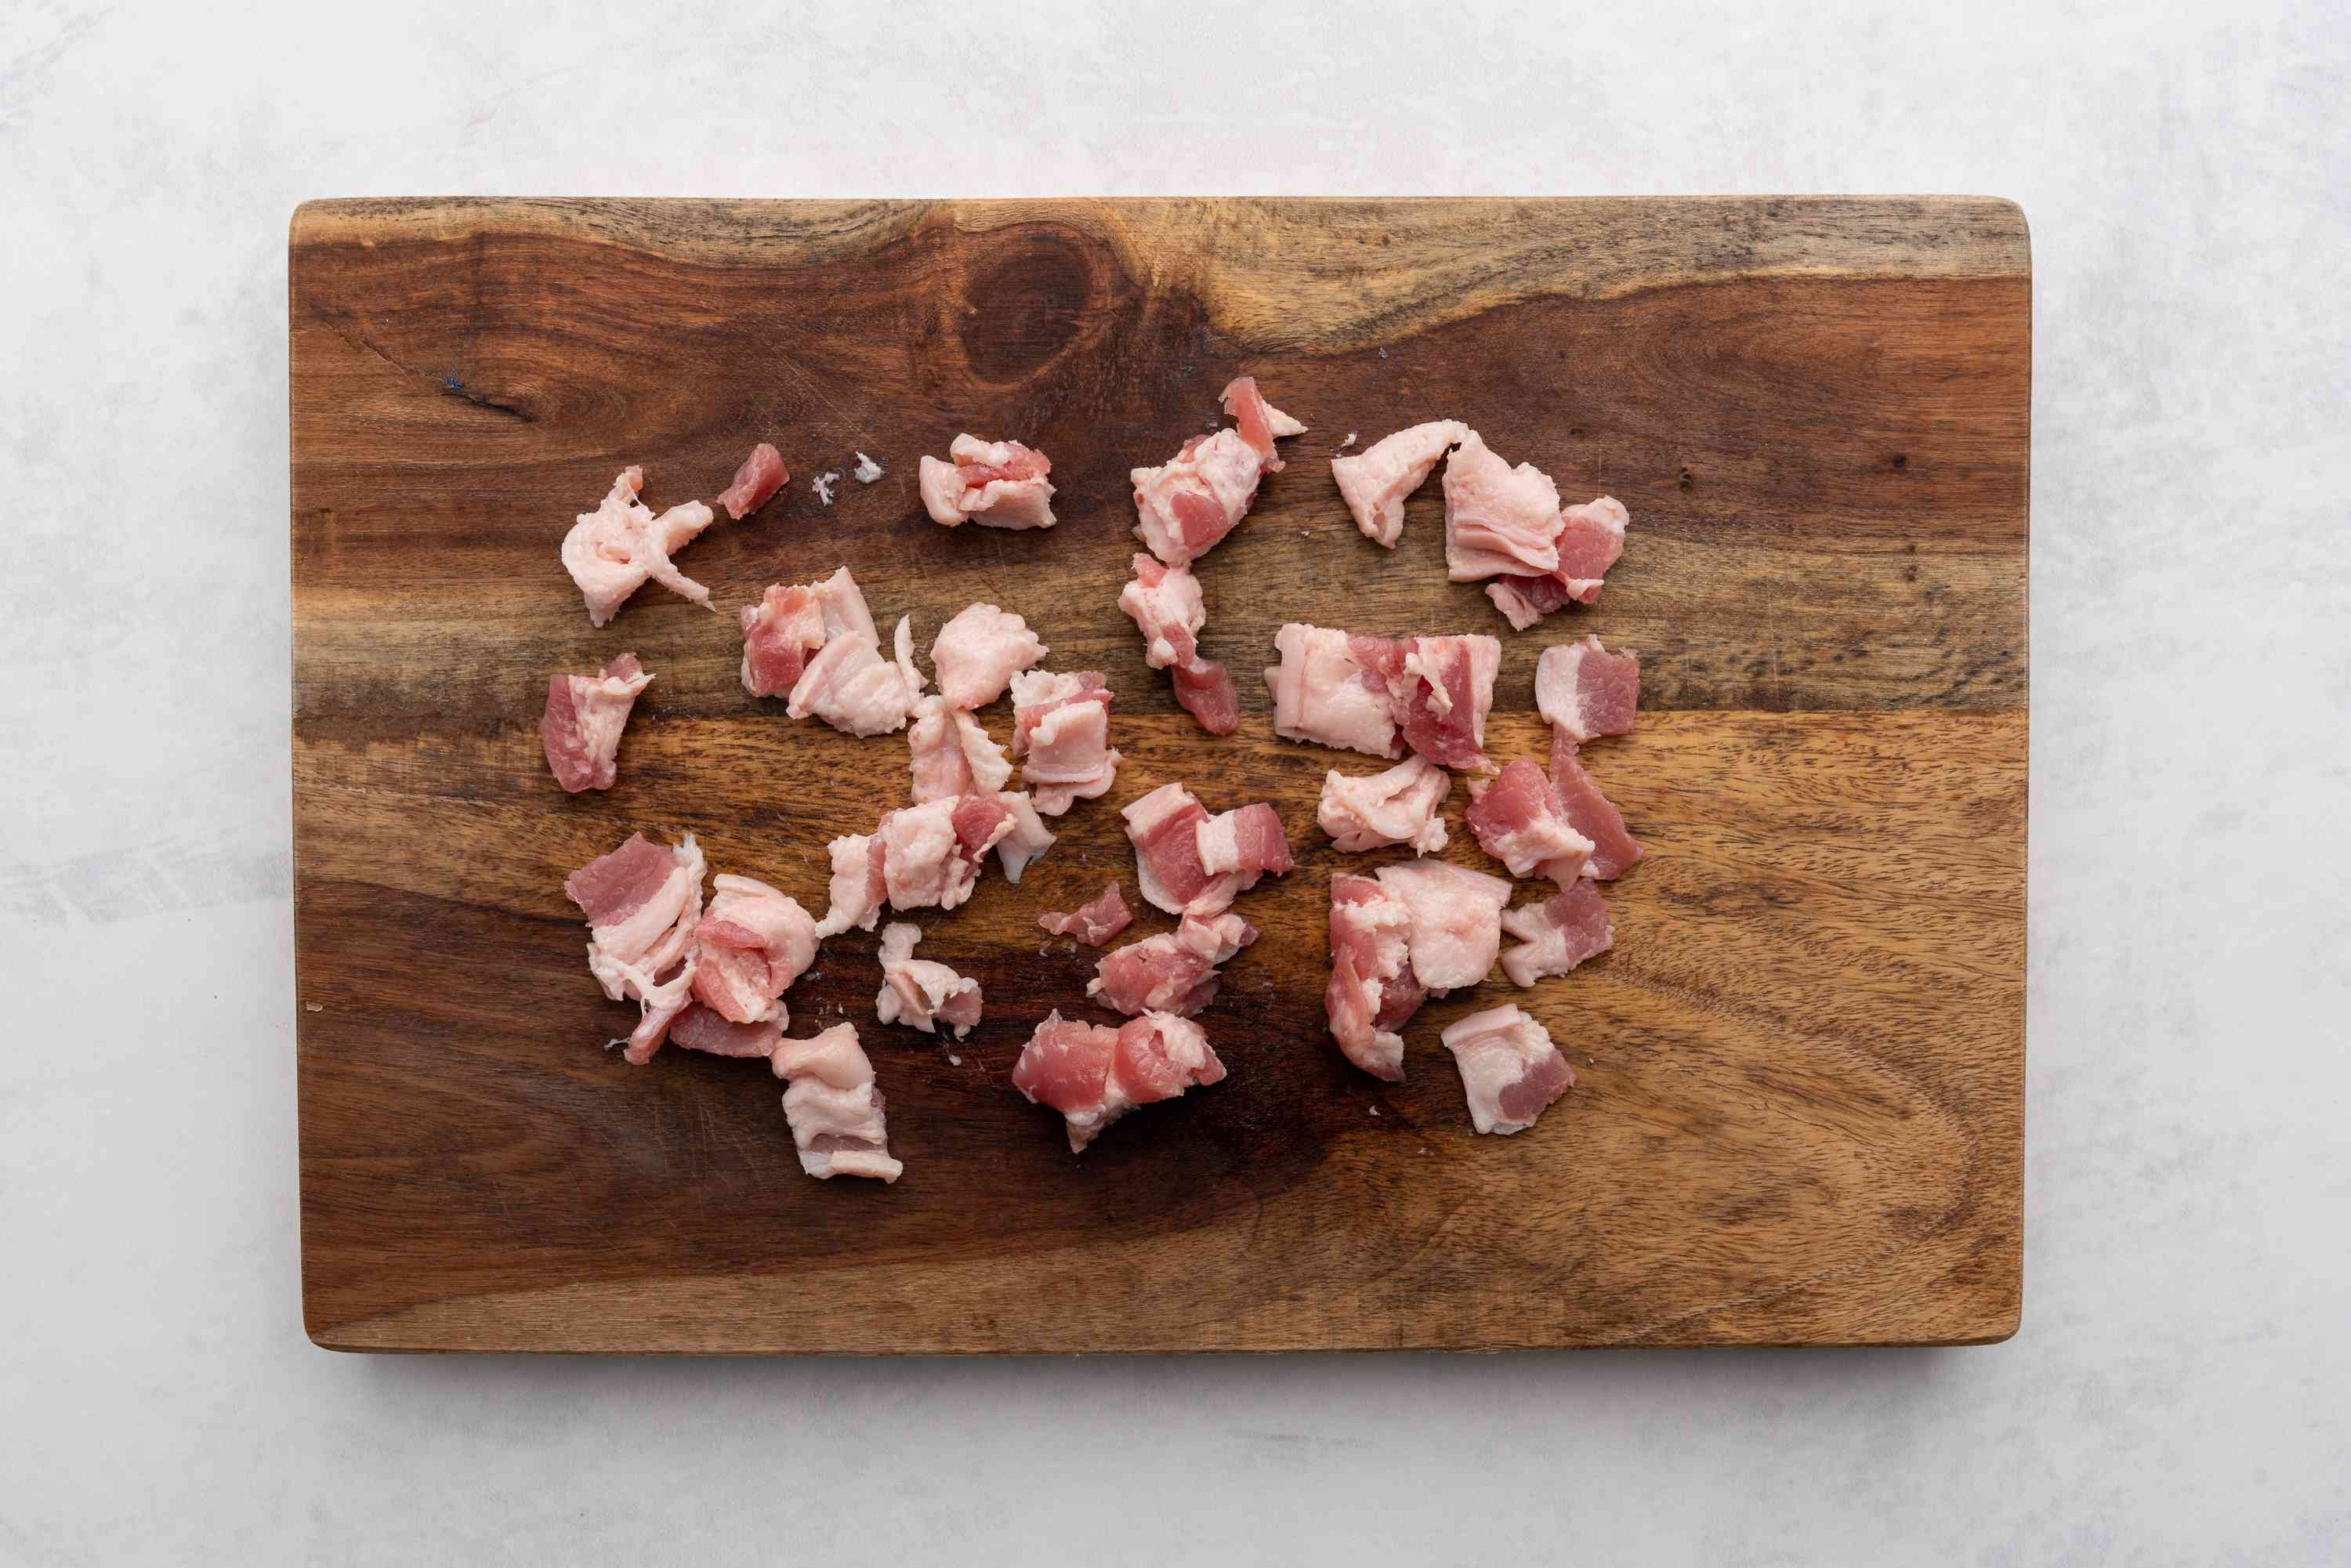 bacon cut into pieces on a cutting board